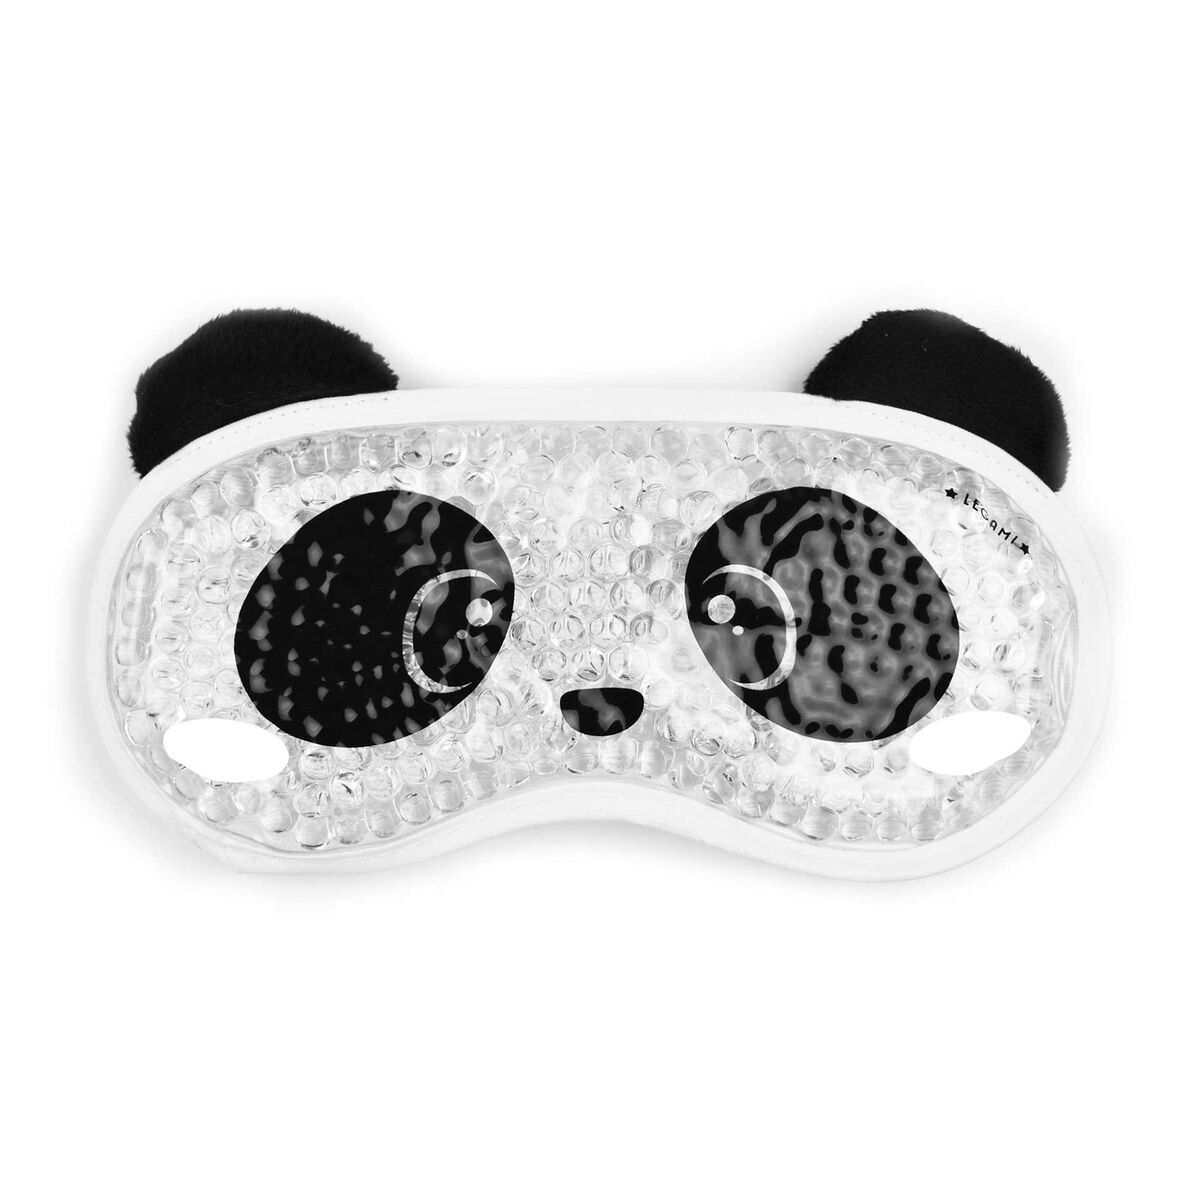 Chill Out - Gel Eye Mask, , zoom